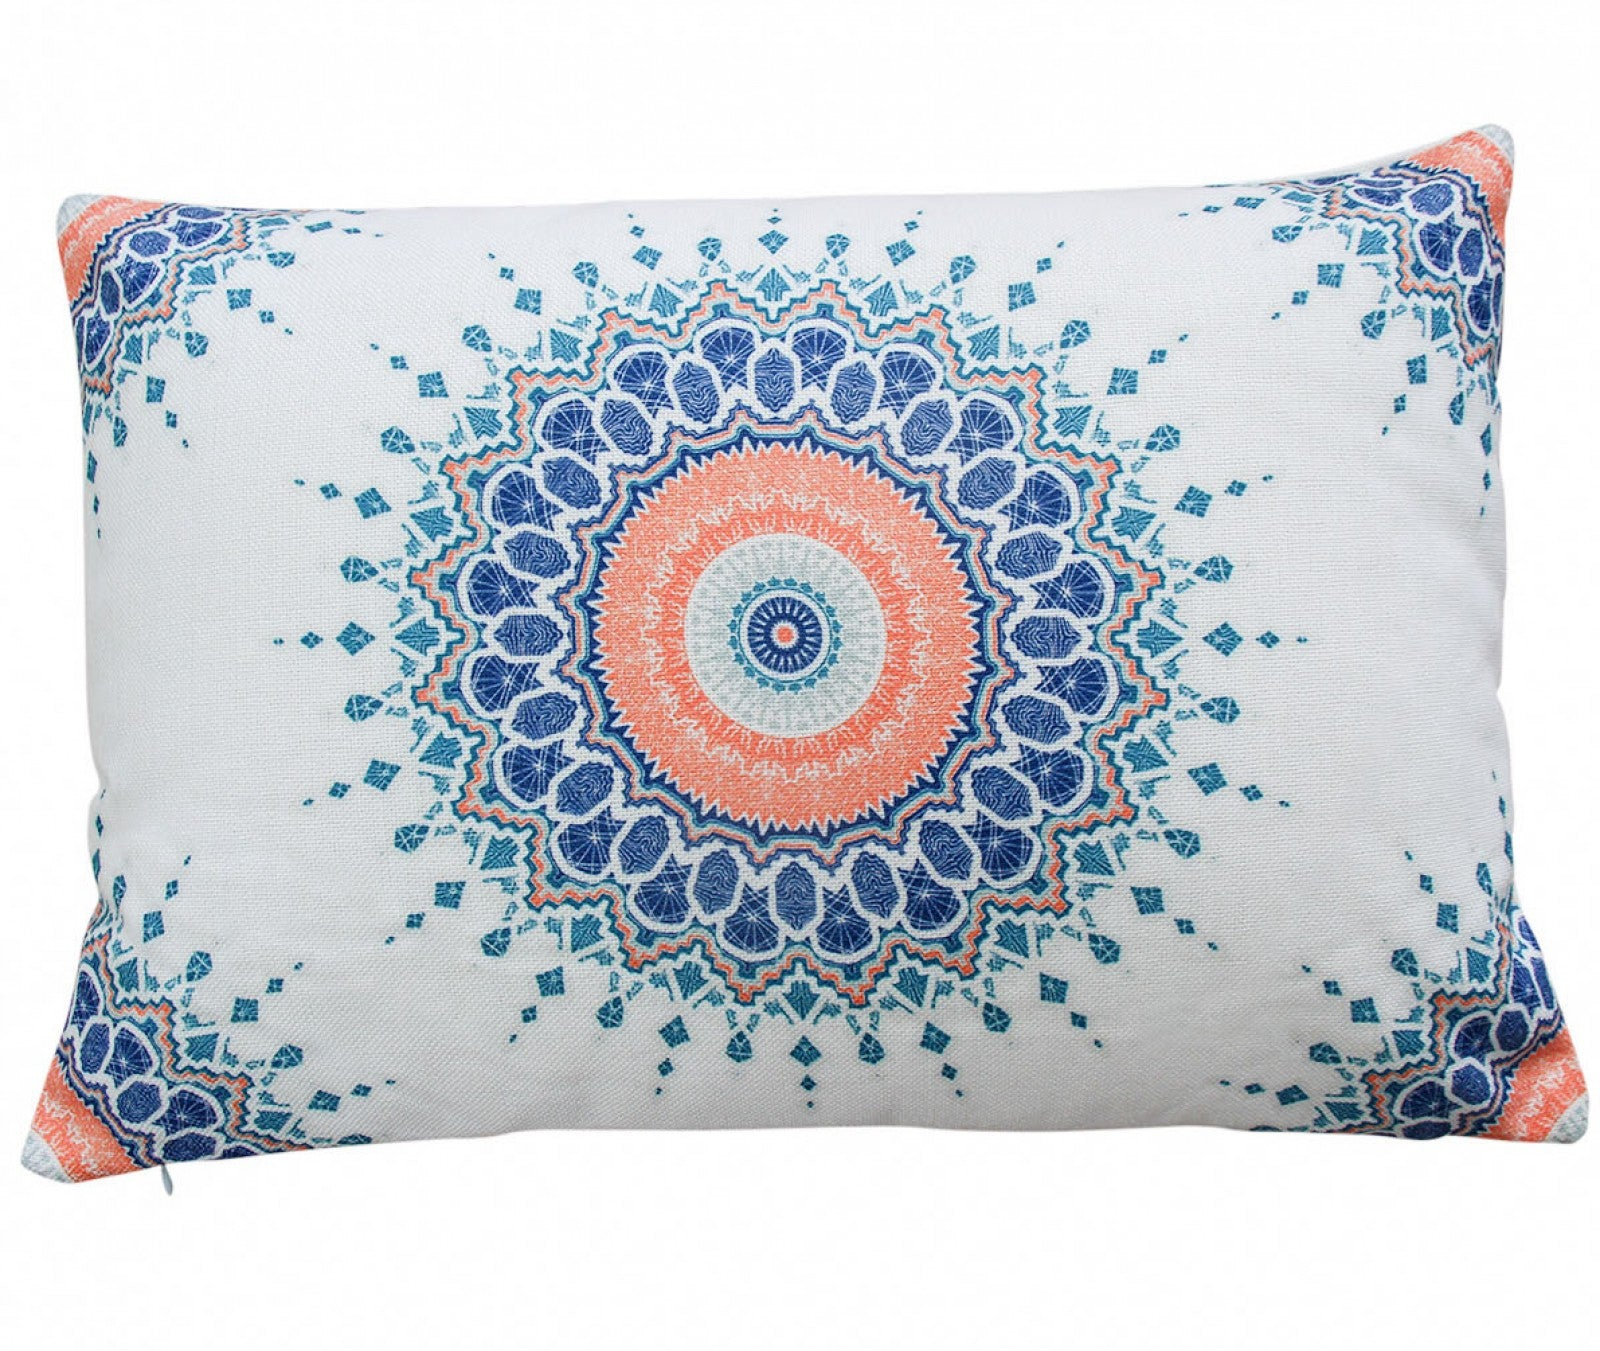 Amira Cushion